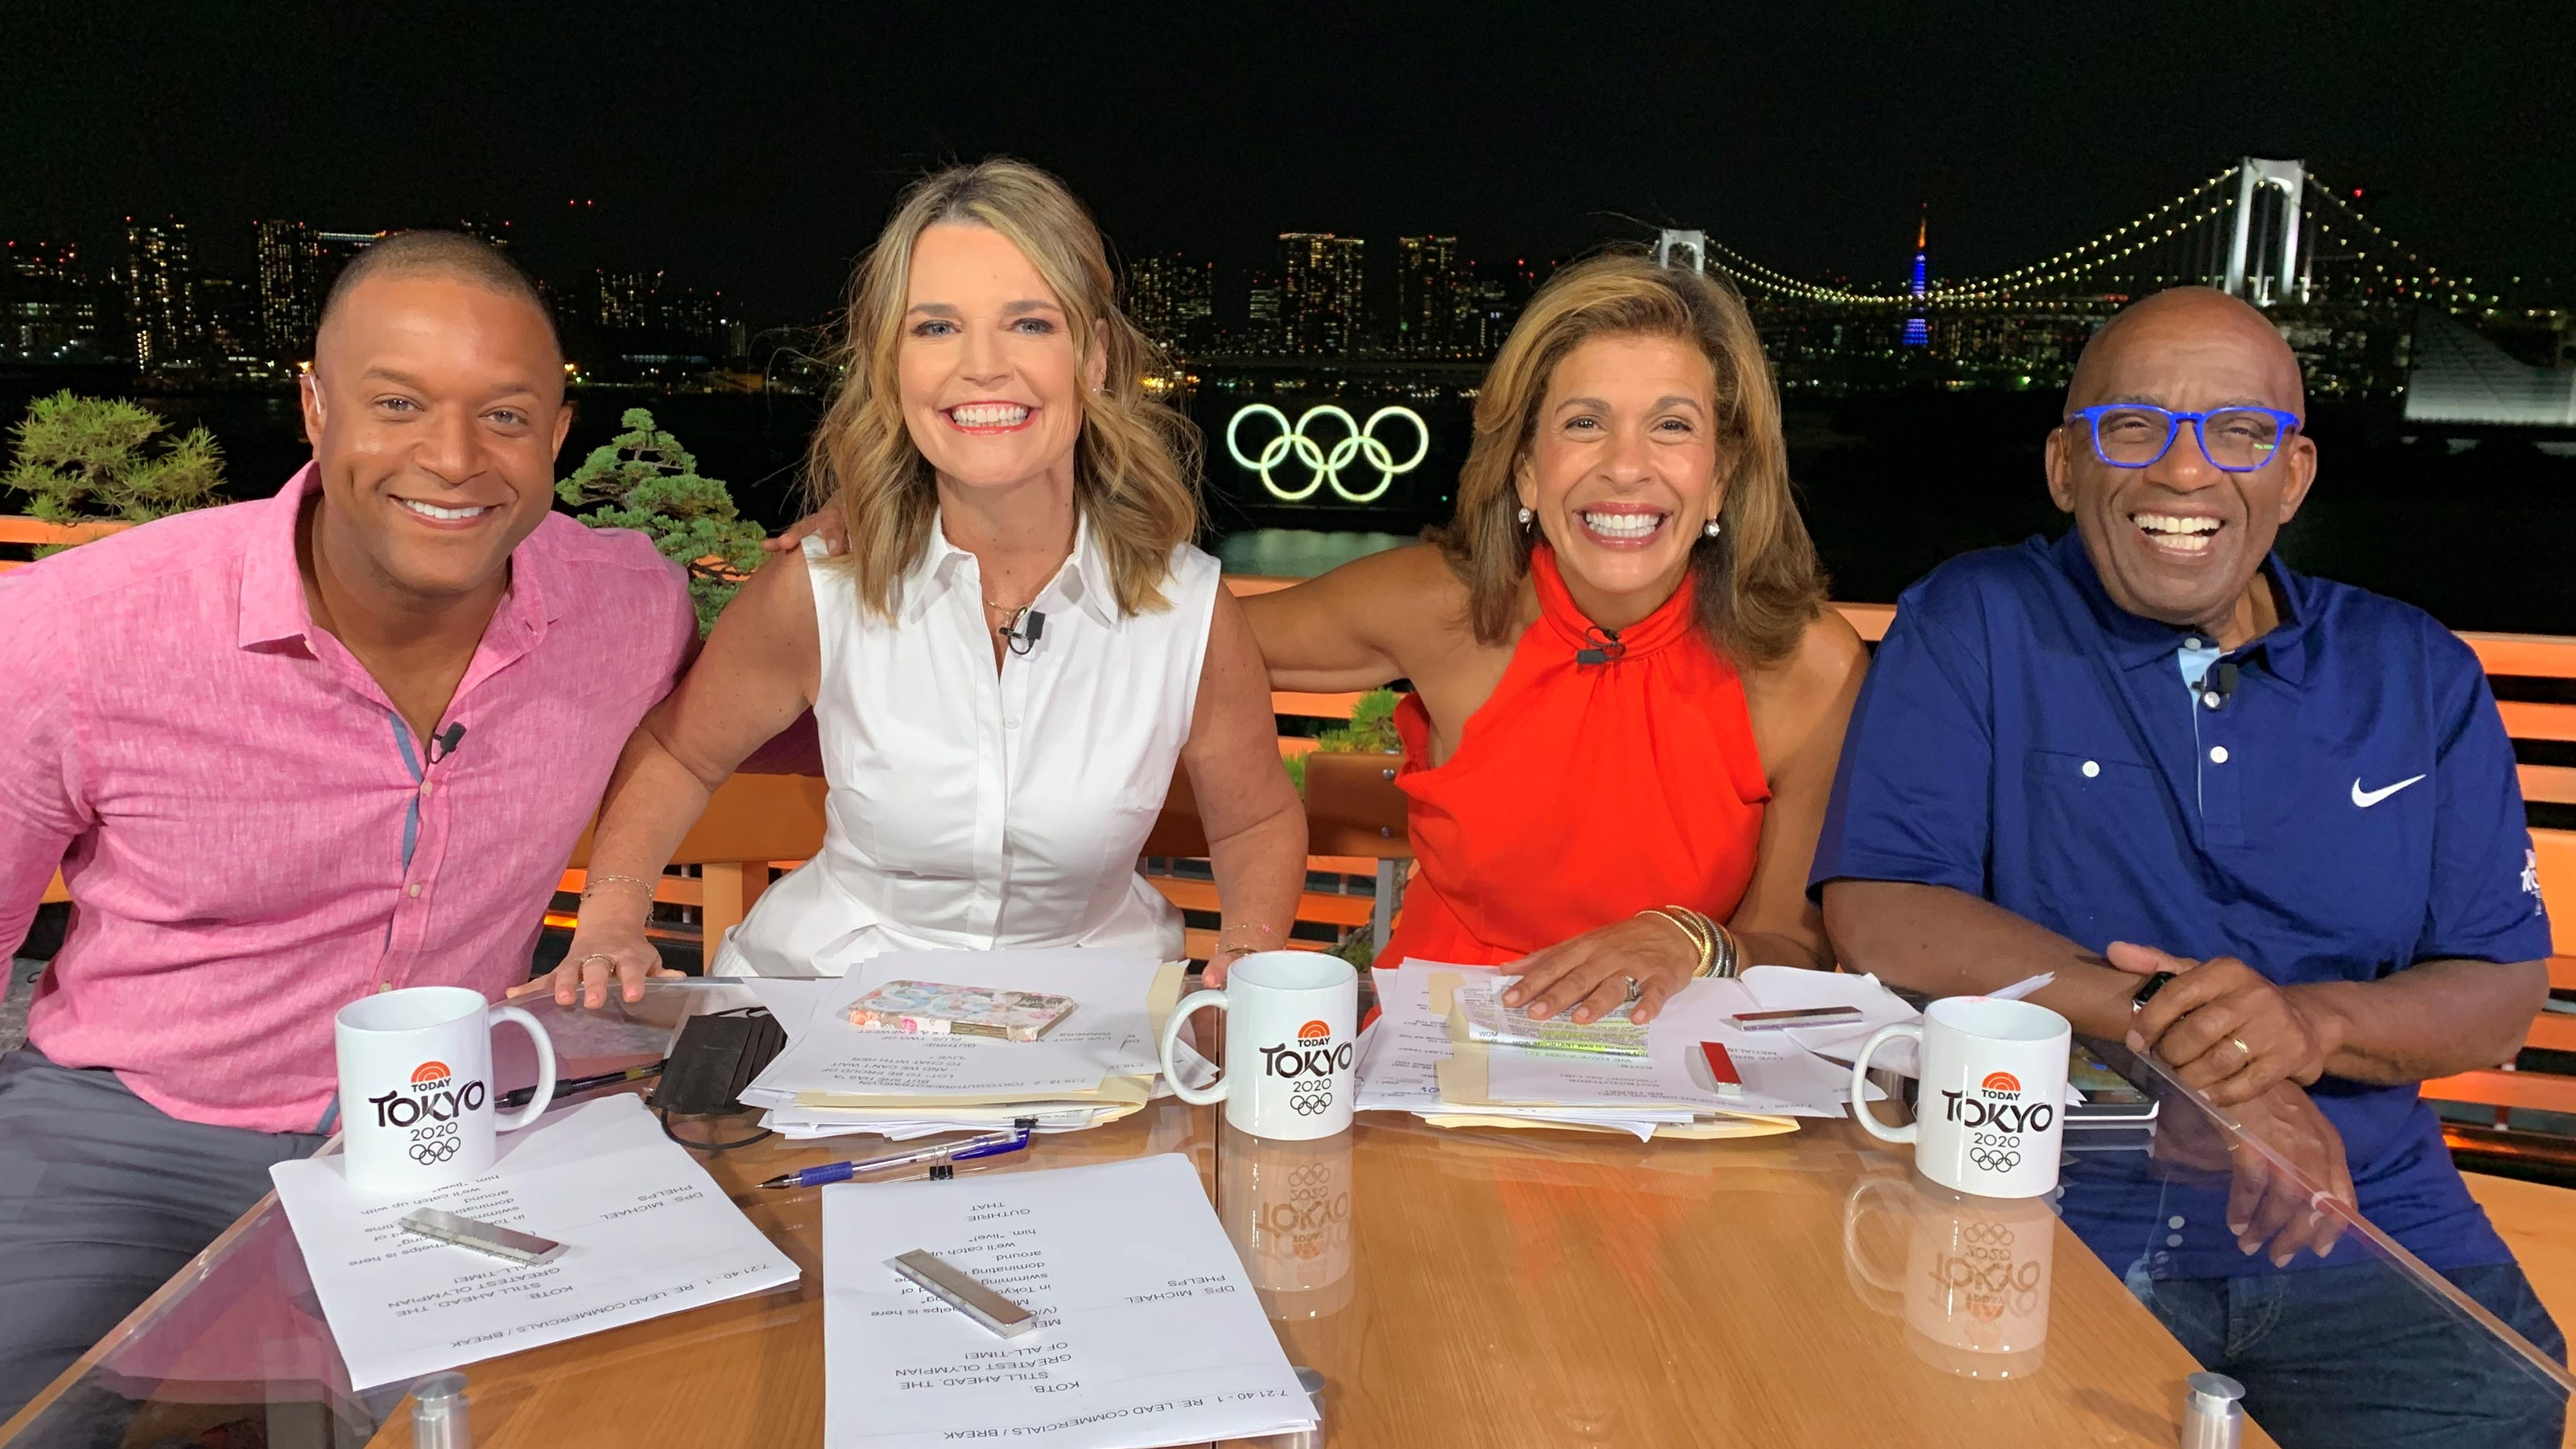 How 'Today' anchors are standing in for families at the Tokyo Olympics: 'They need people here'